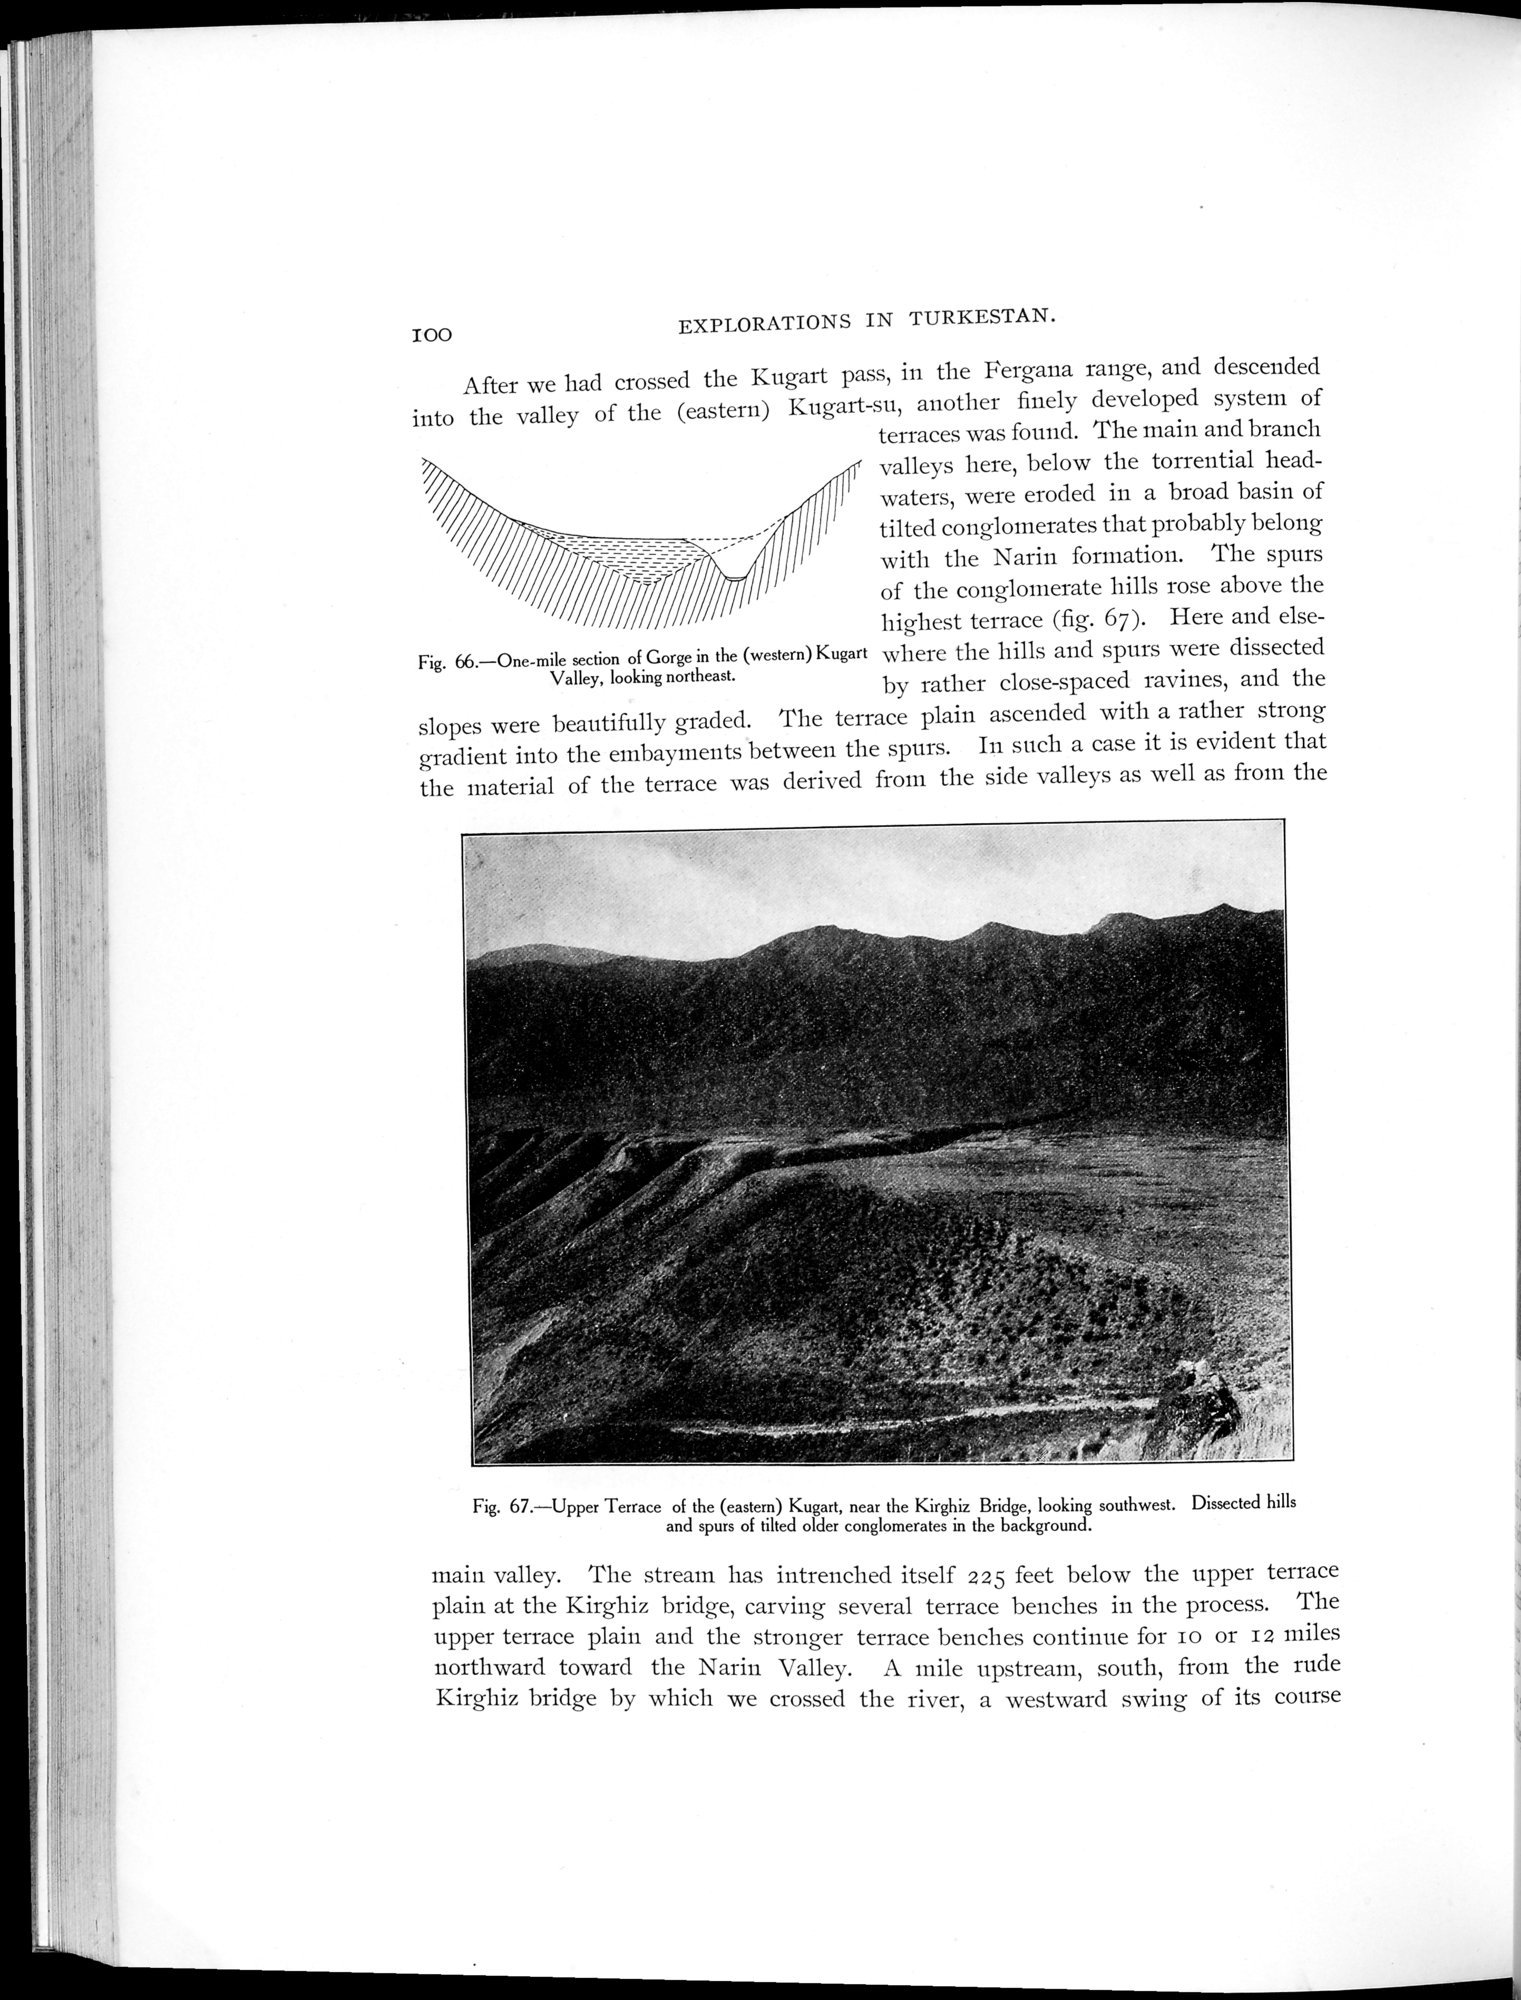 Explorations in Turkestan 1903 : vol.1 / Page 124 (Grayscale High Resolution Image)